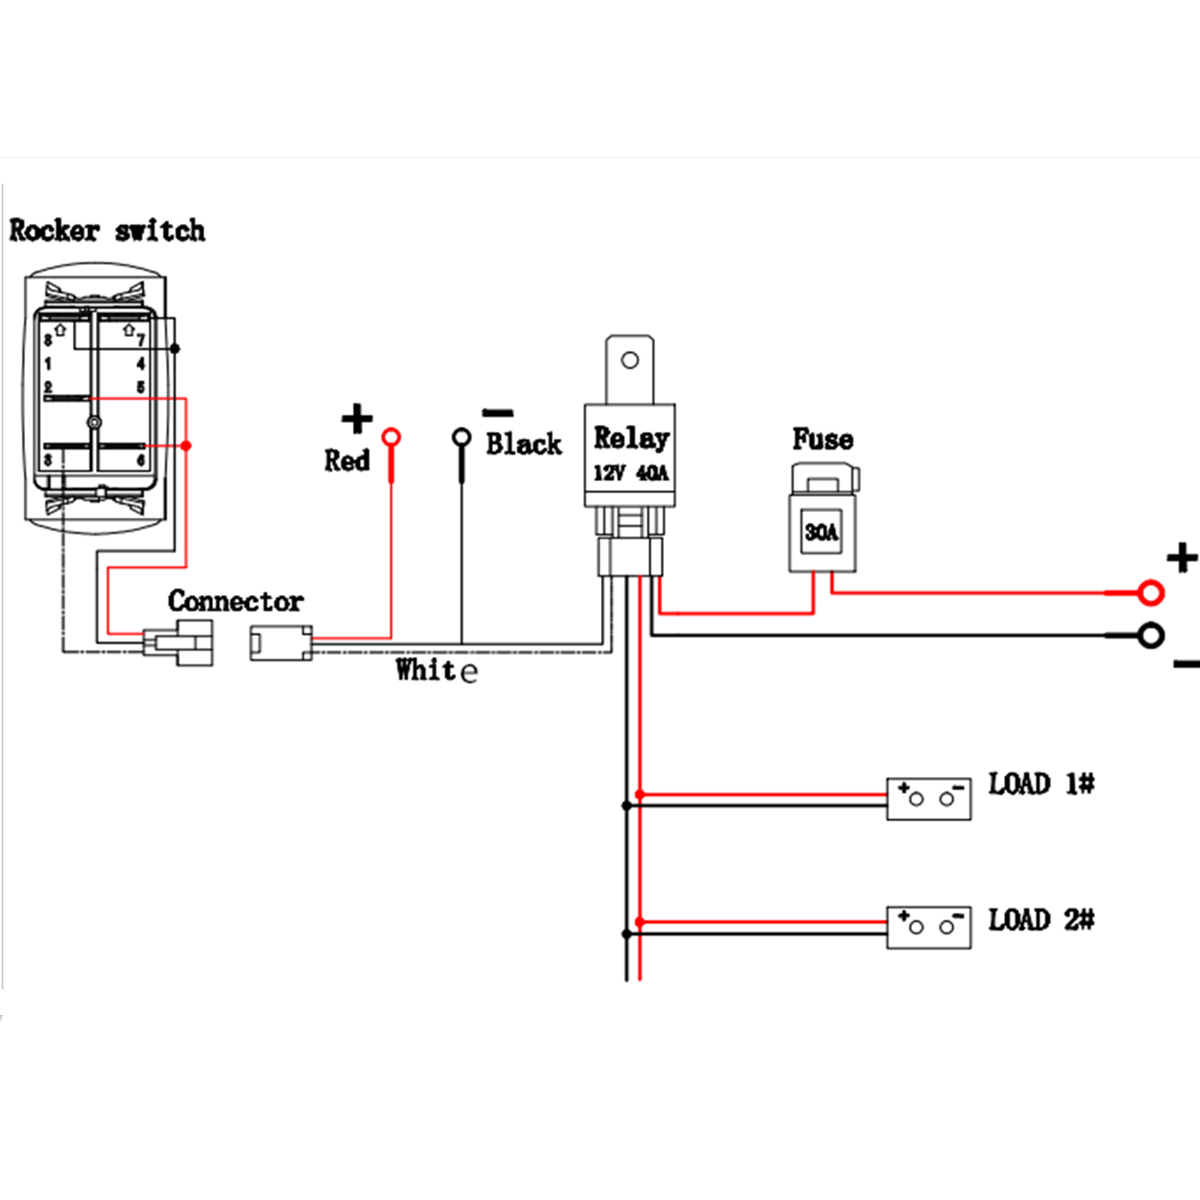 [DIAGRAM_38IU]  YD_3285] Toggle Switch Panel Wiring Diagram Download Diagram | Led Rocker Switch Wiring Diagram |  | Ginia Monoc Isra Mohammedshrine Librar Wiring 101